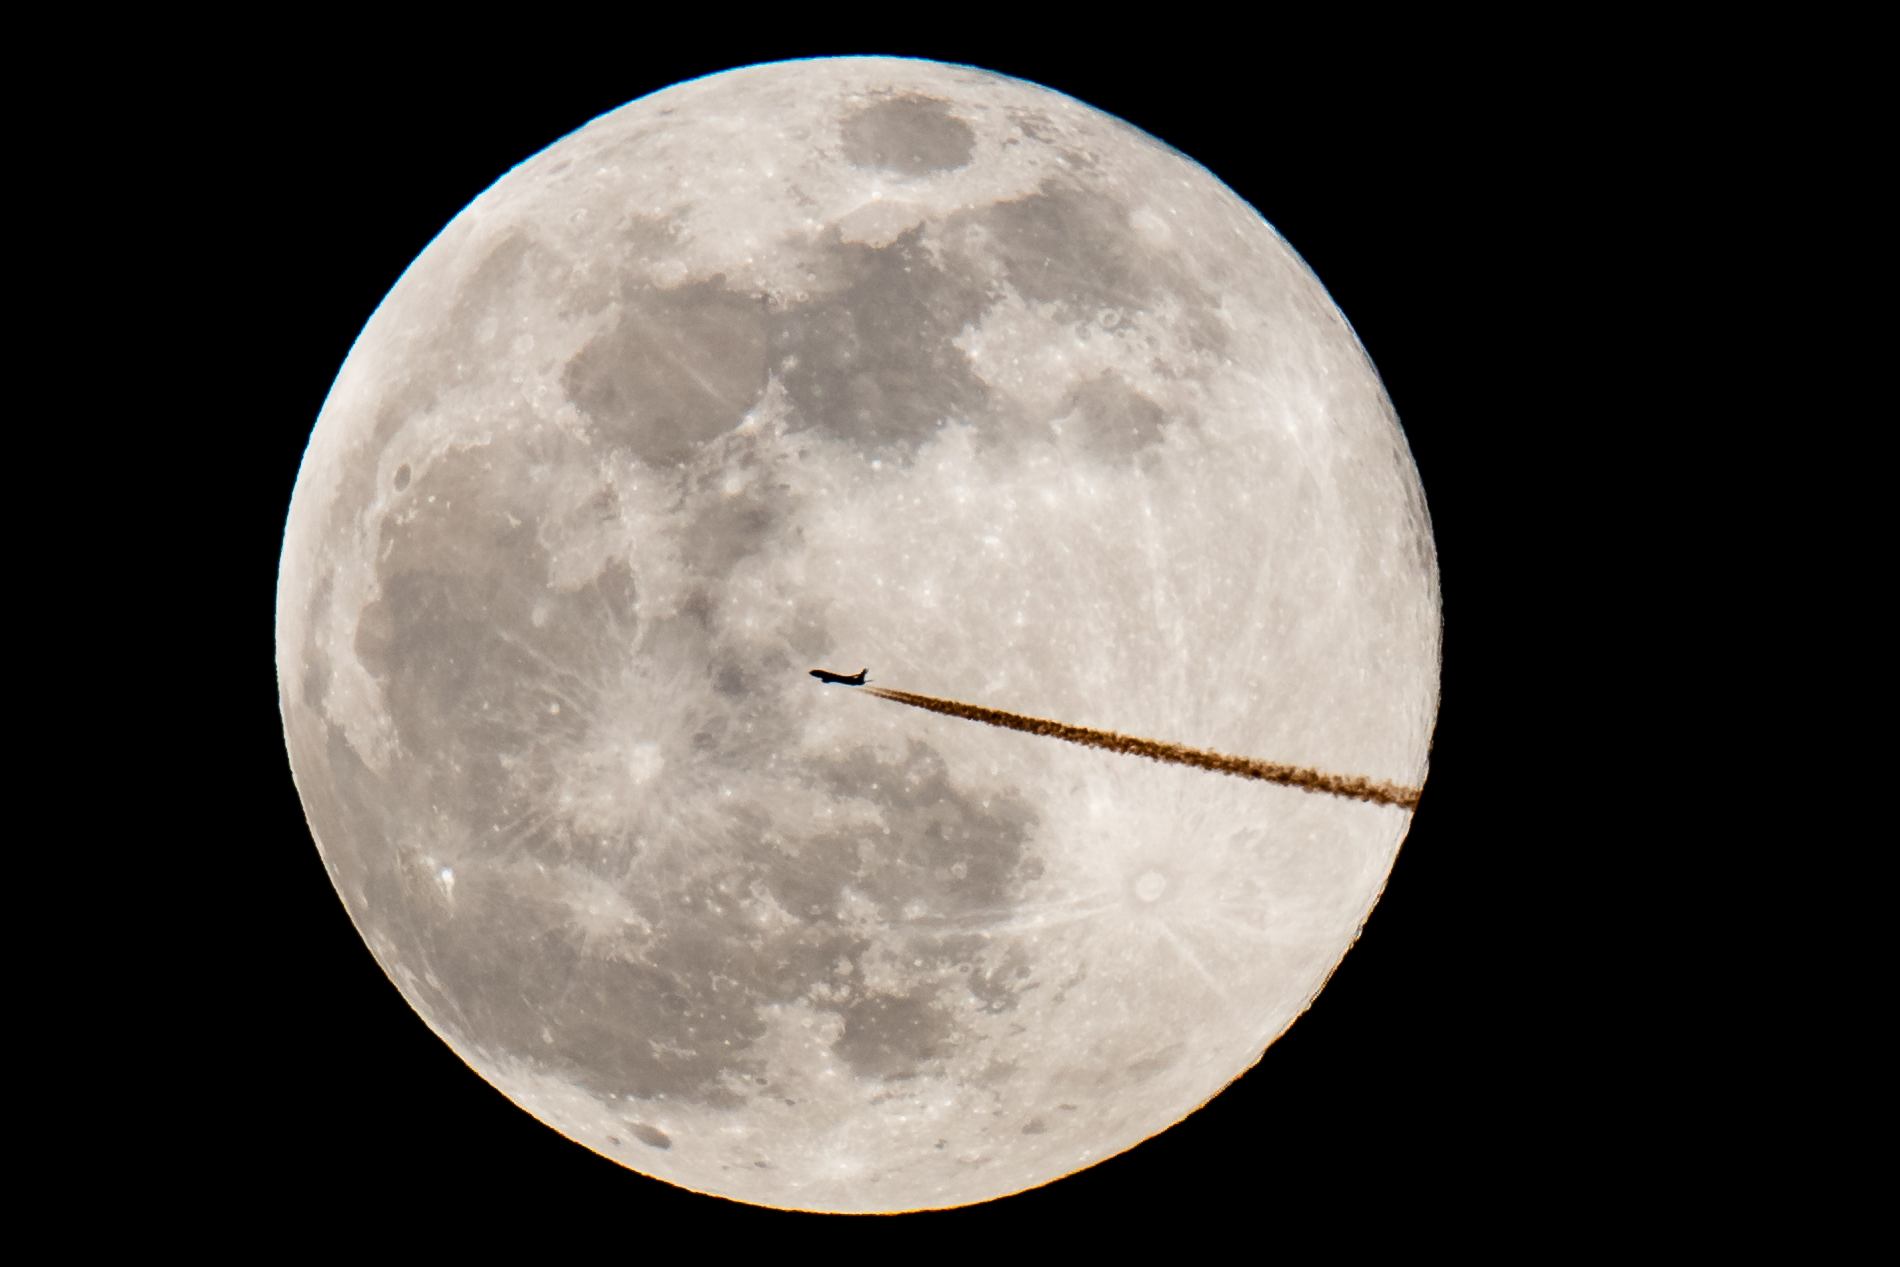 An airplane silhouettes against the Super Moon on Feb. 19, 2019, in Nuremberg, southern Germany. (Credit: DANIEL KARMANN/AFP/Getty Images)